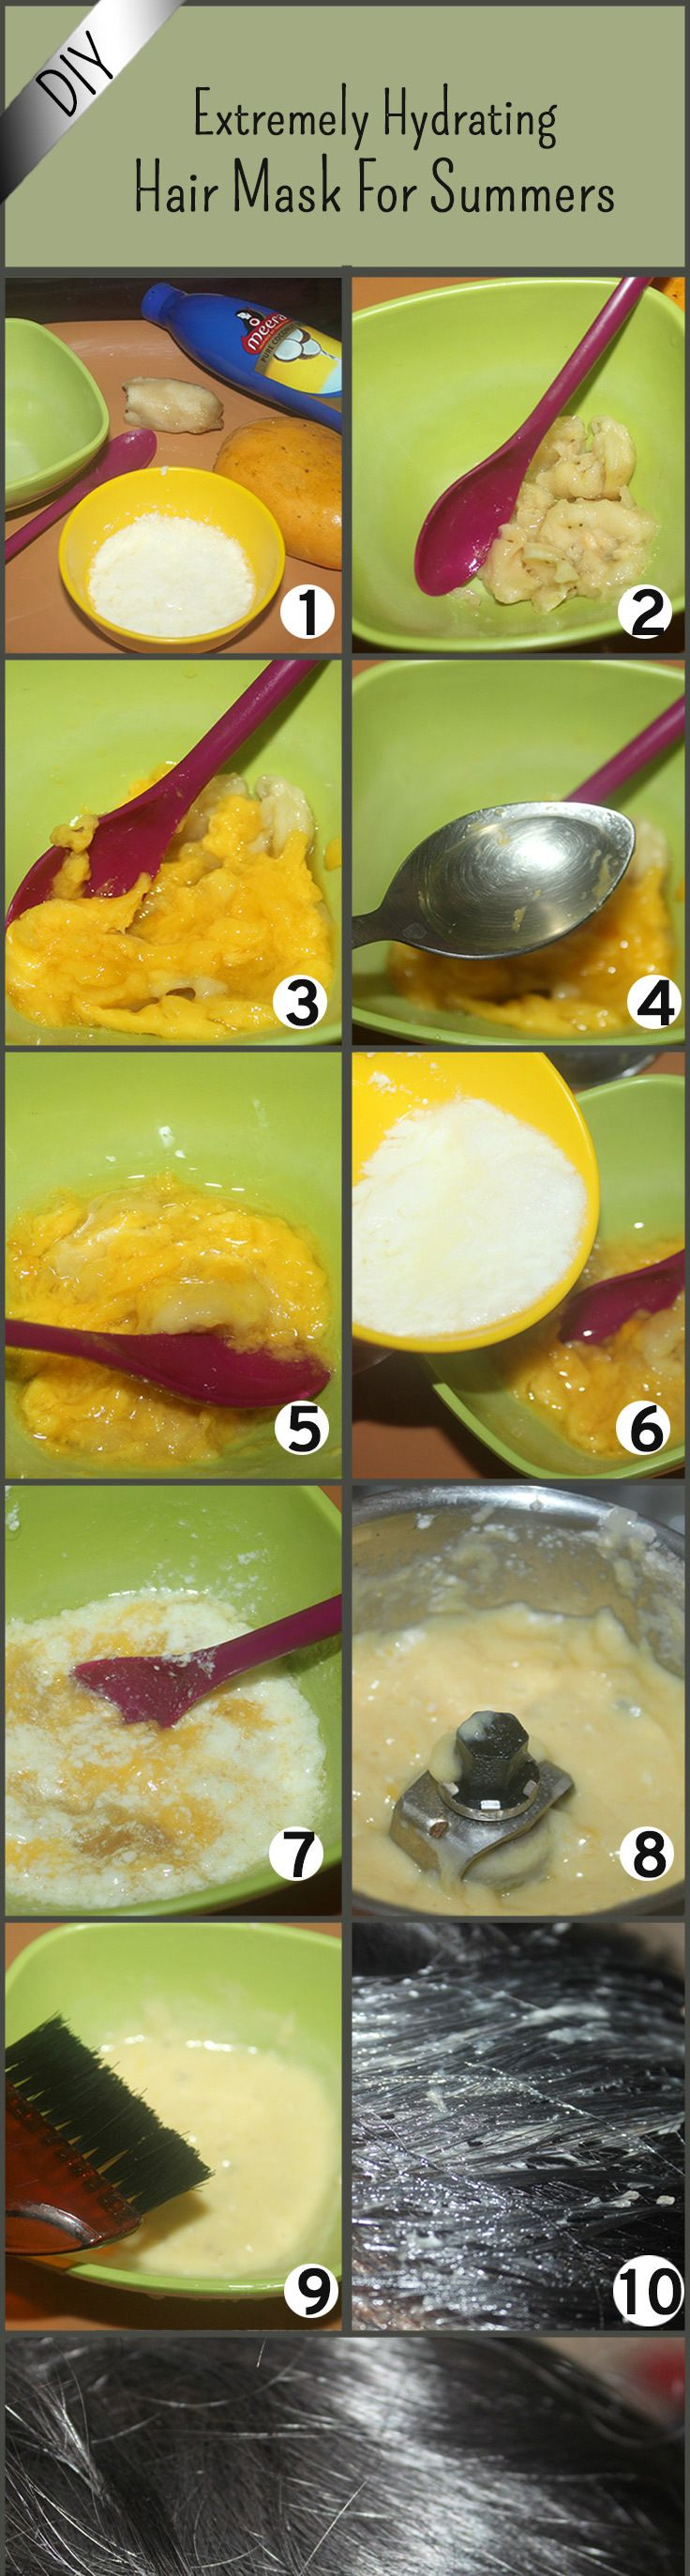 DIY - Extremely Hydrating Hair Mask For Summers